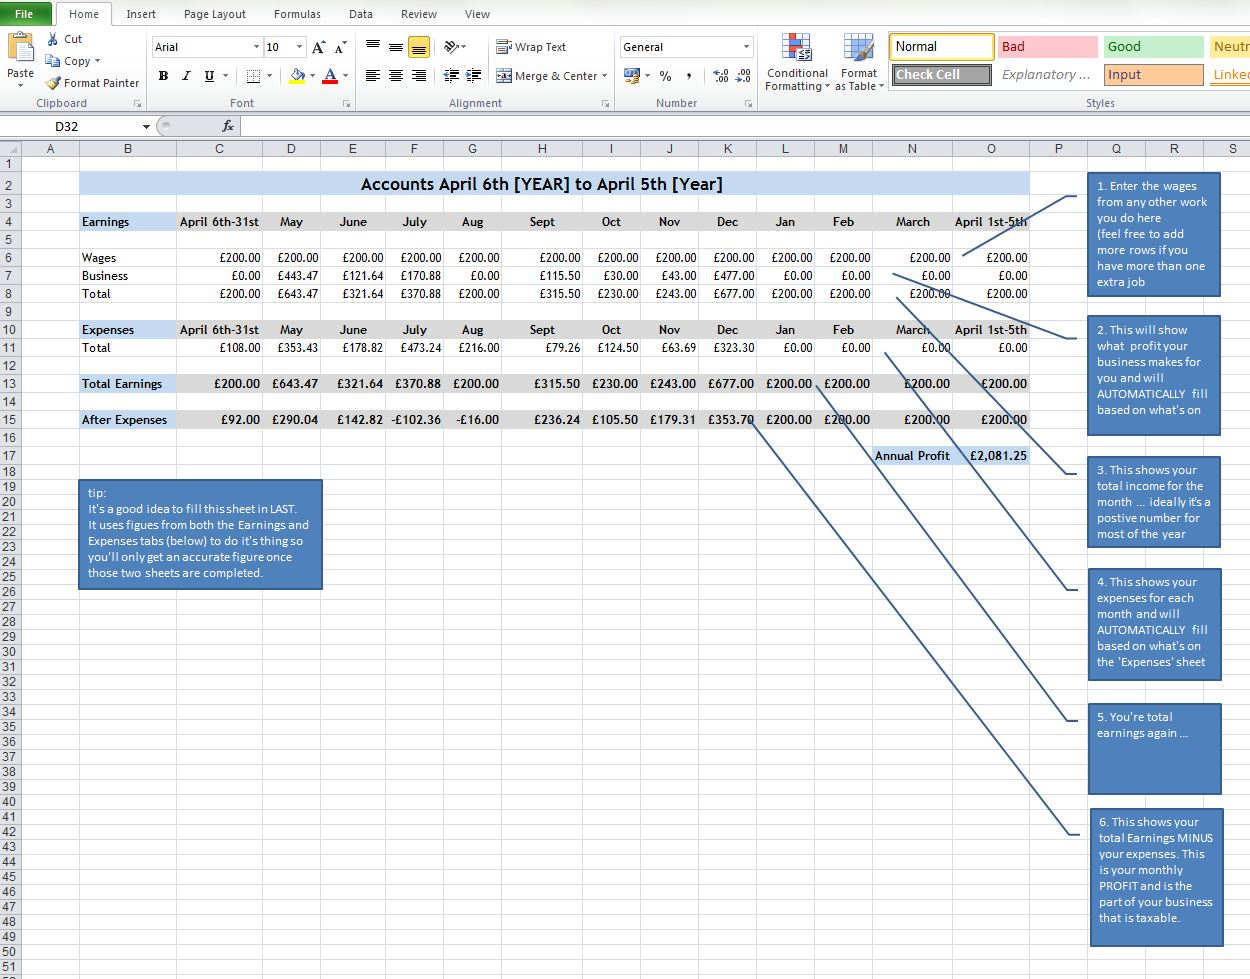 Tax Return Spreadsheet Within Tax Returns For Super Small Creative Businesses [Part Two]  Becca